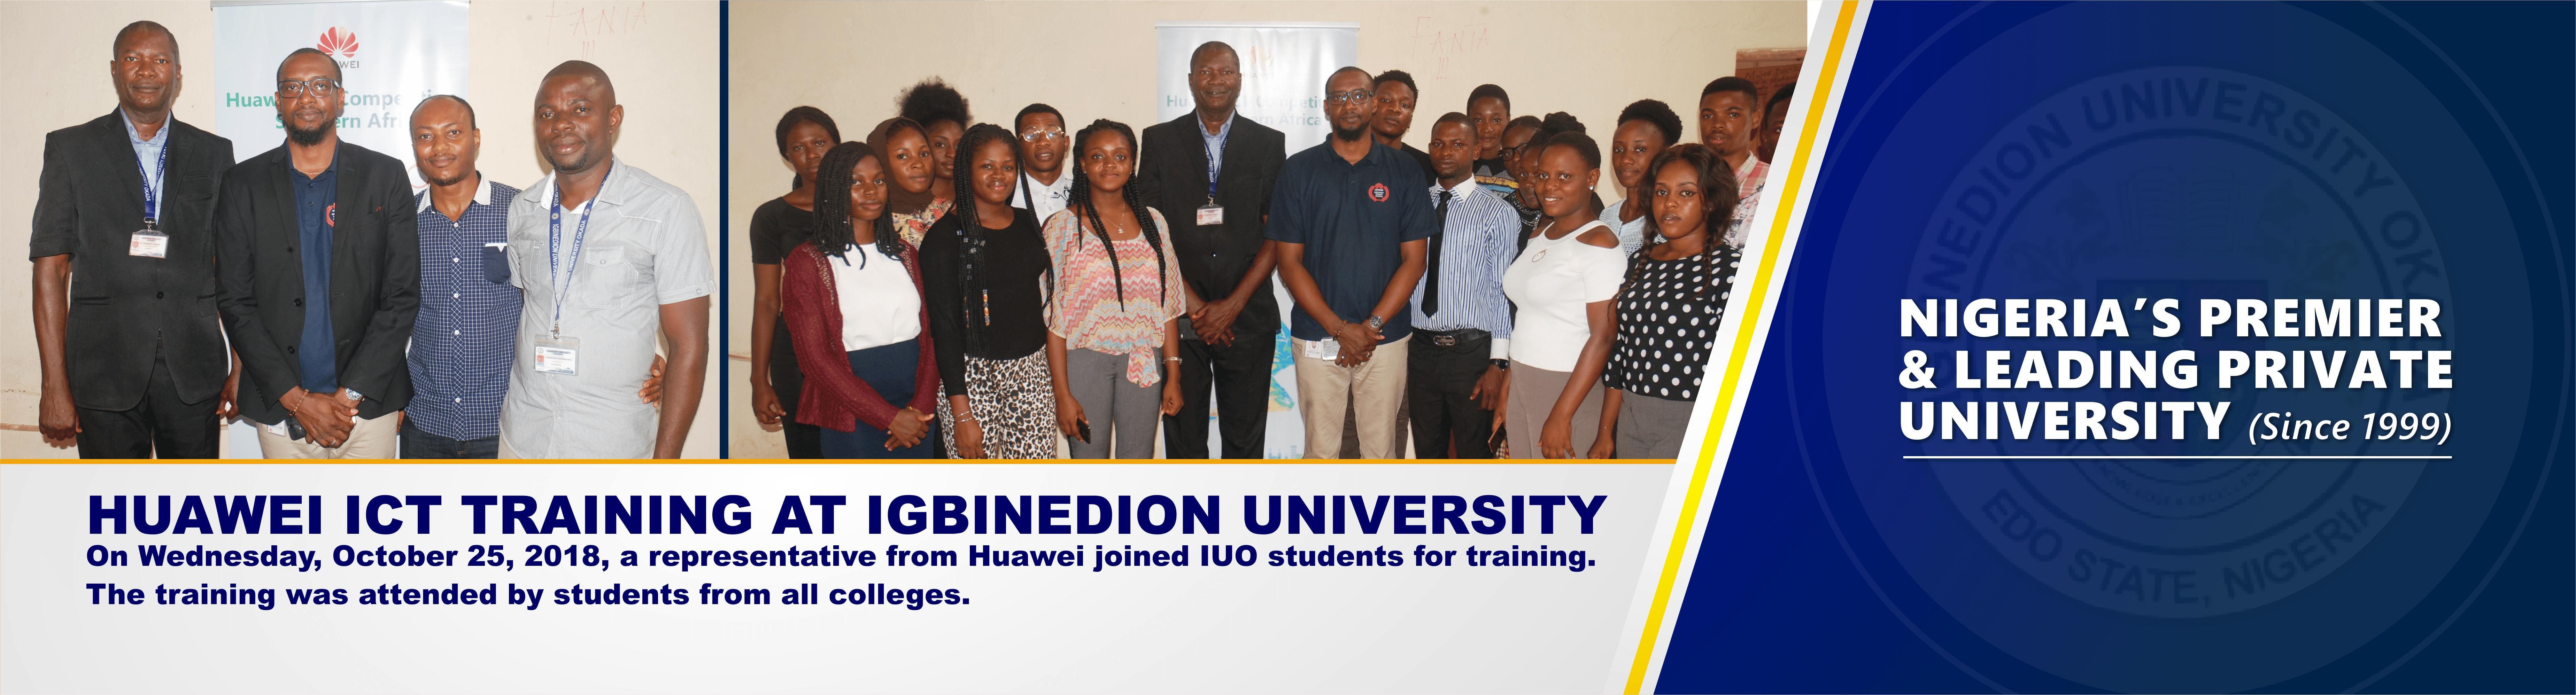 Igbinedion University Huawei Training